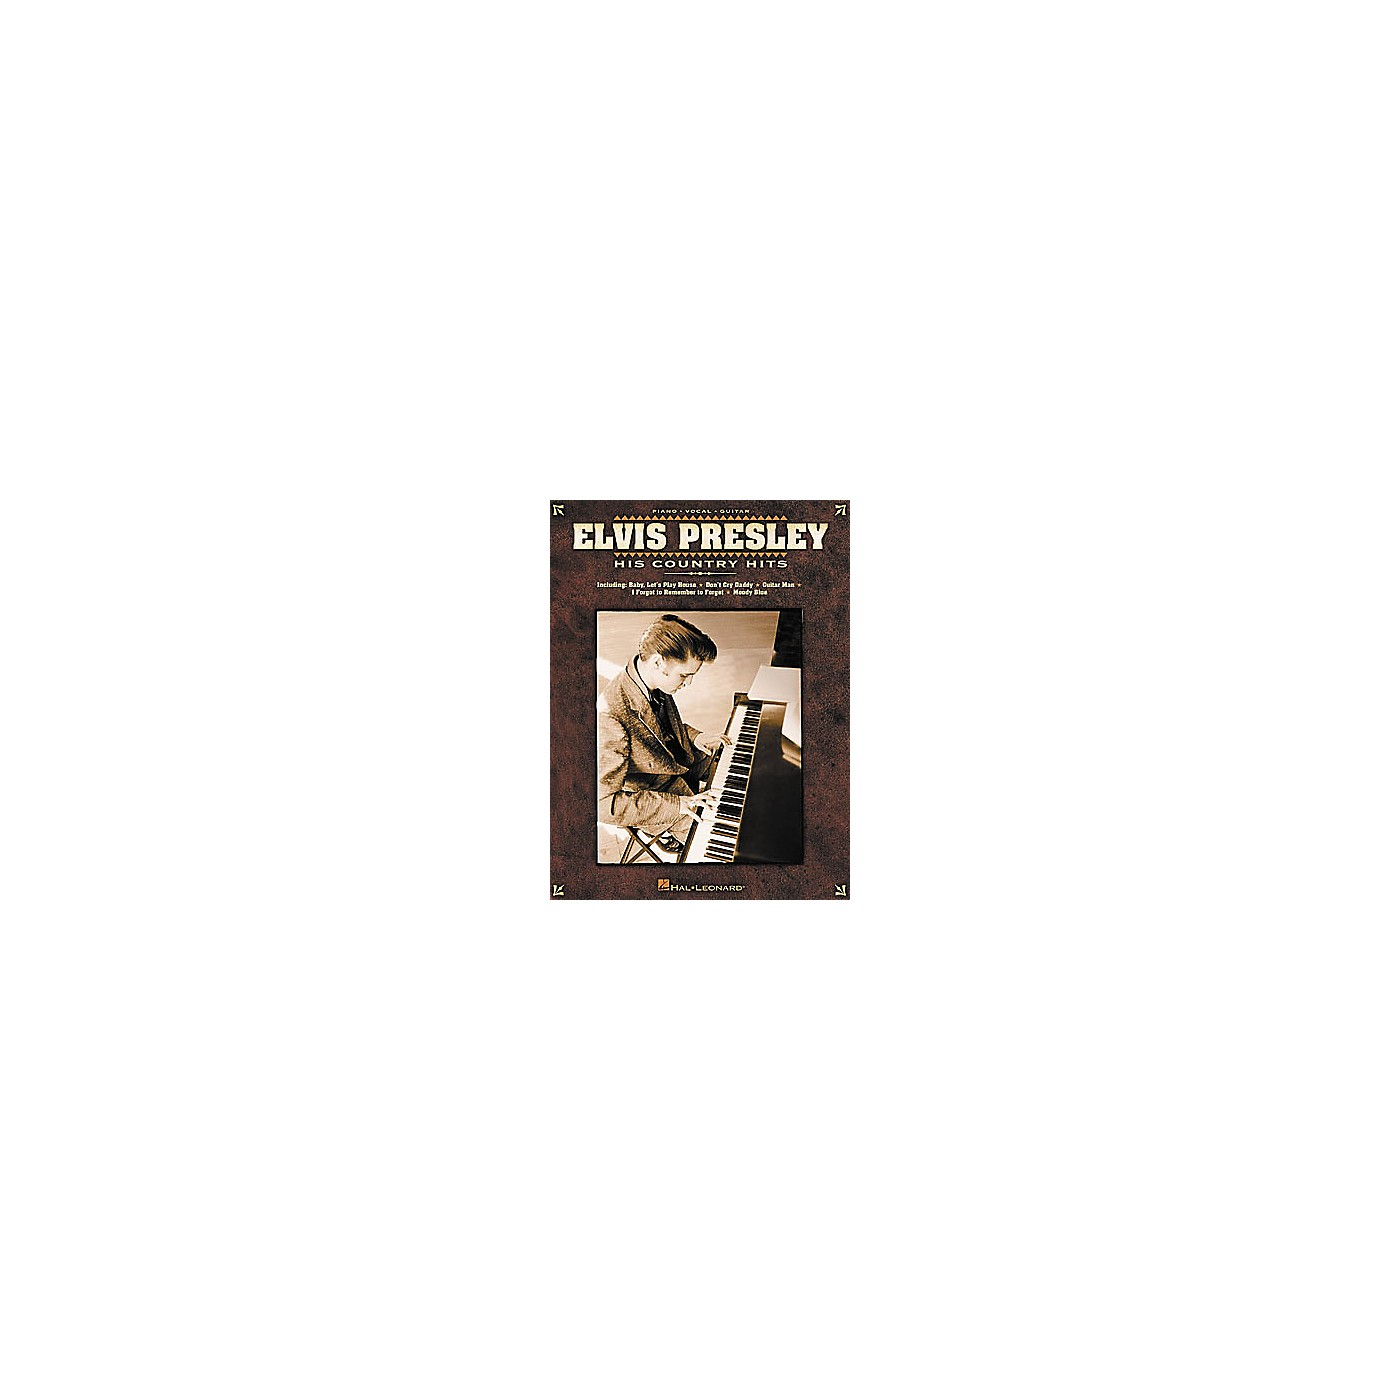 Hal Leonard Elvis Presley - His Country Hits Piano, Vocal, Guitar Songbook thumbnail